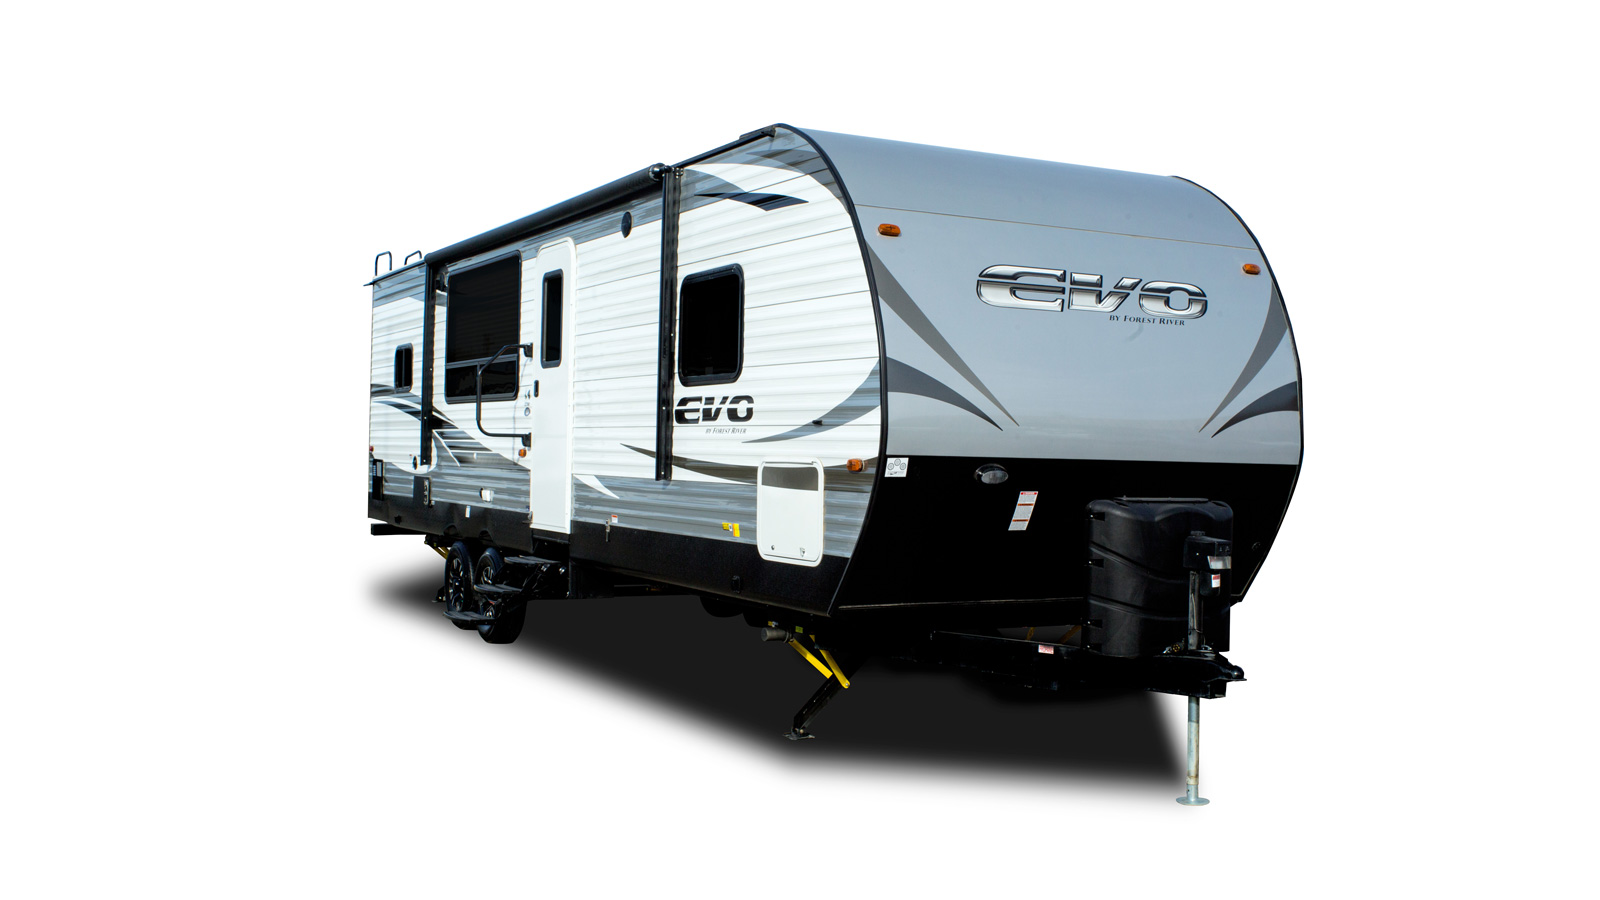 Evo Travel Trailers By Forest River Rv Power Supply Schematics Interior And Exterior